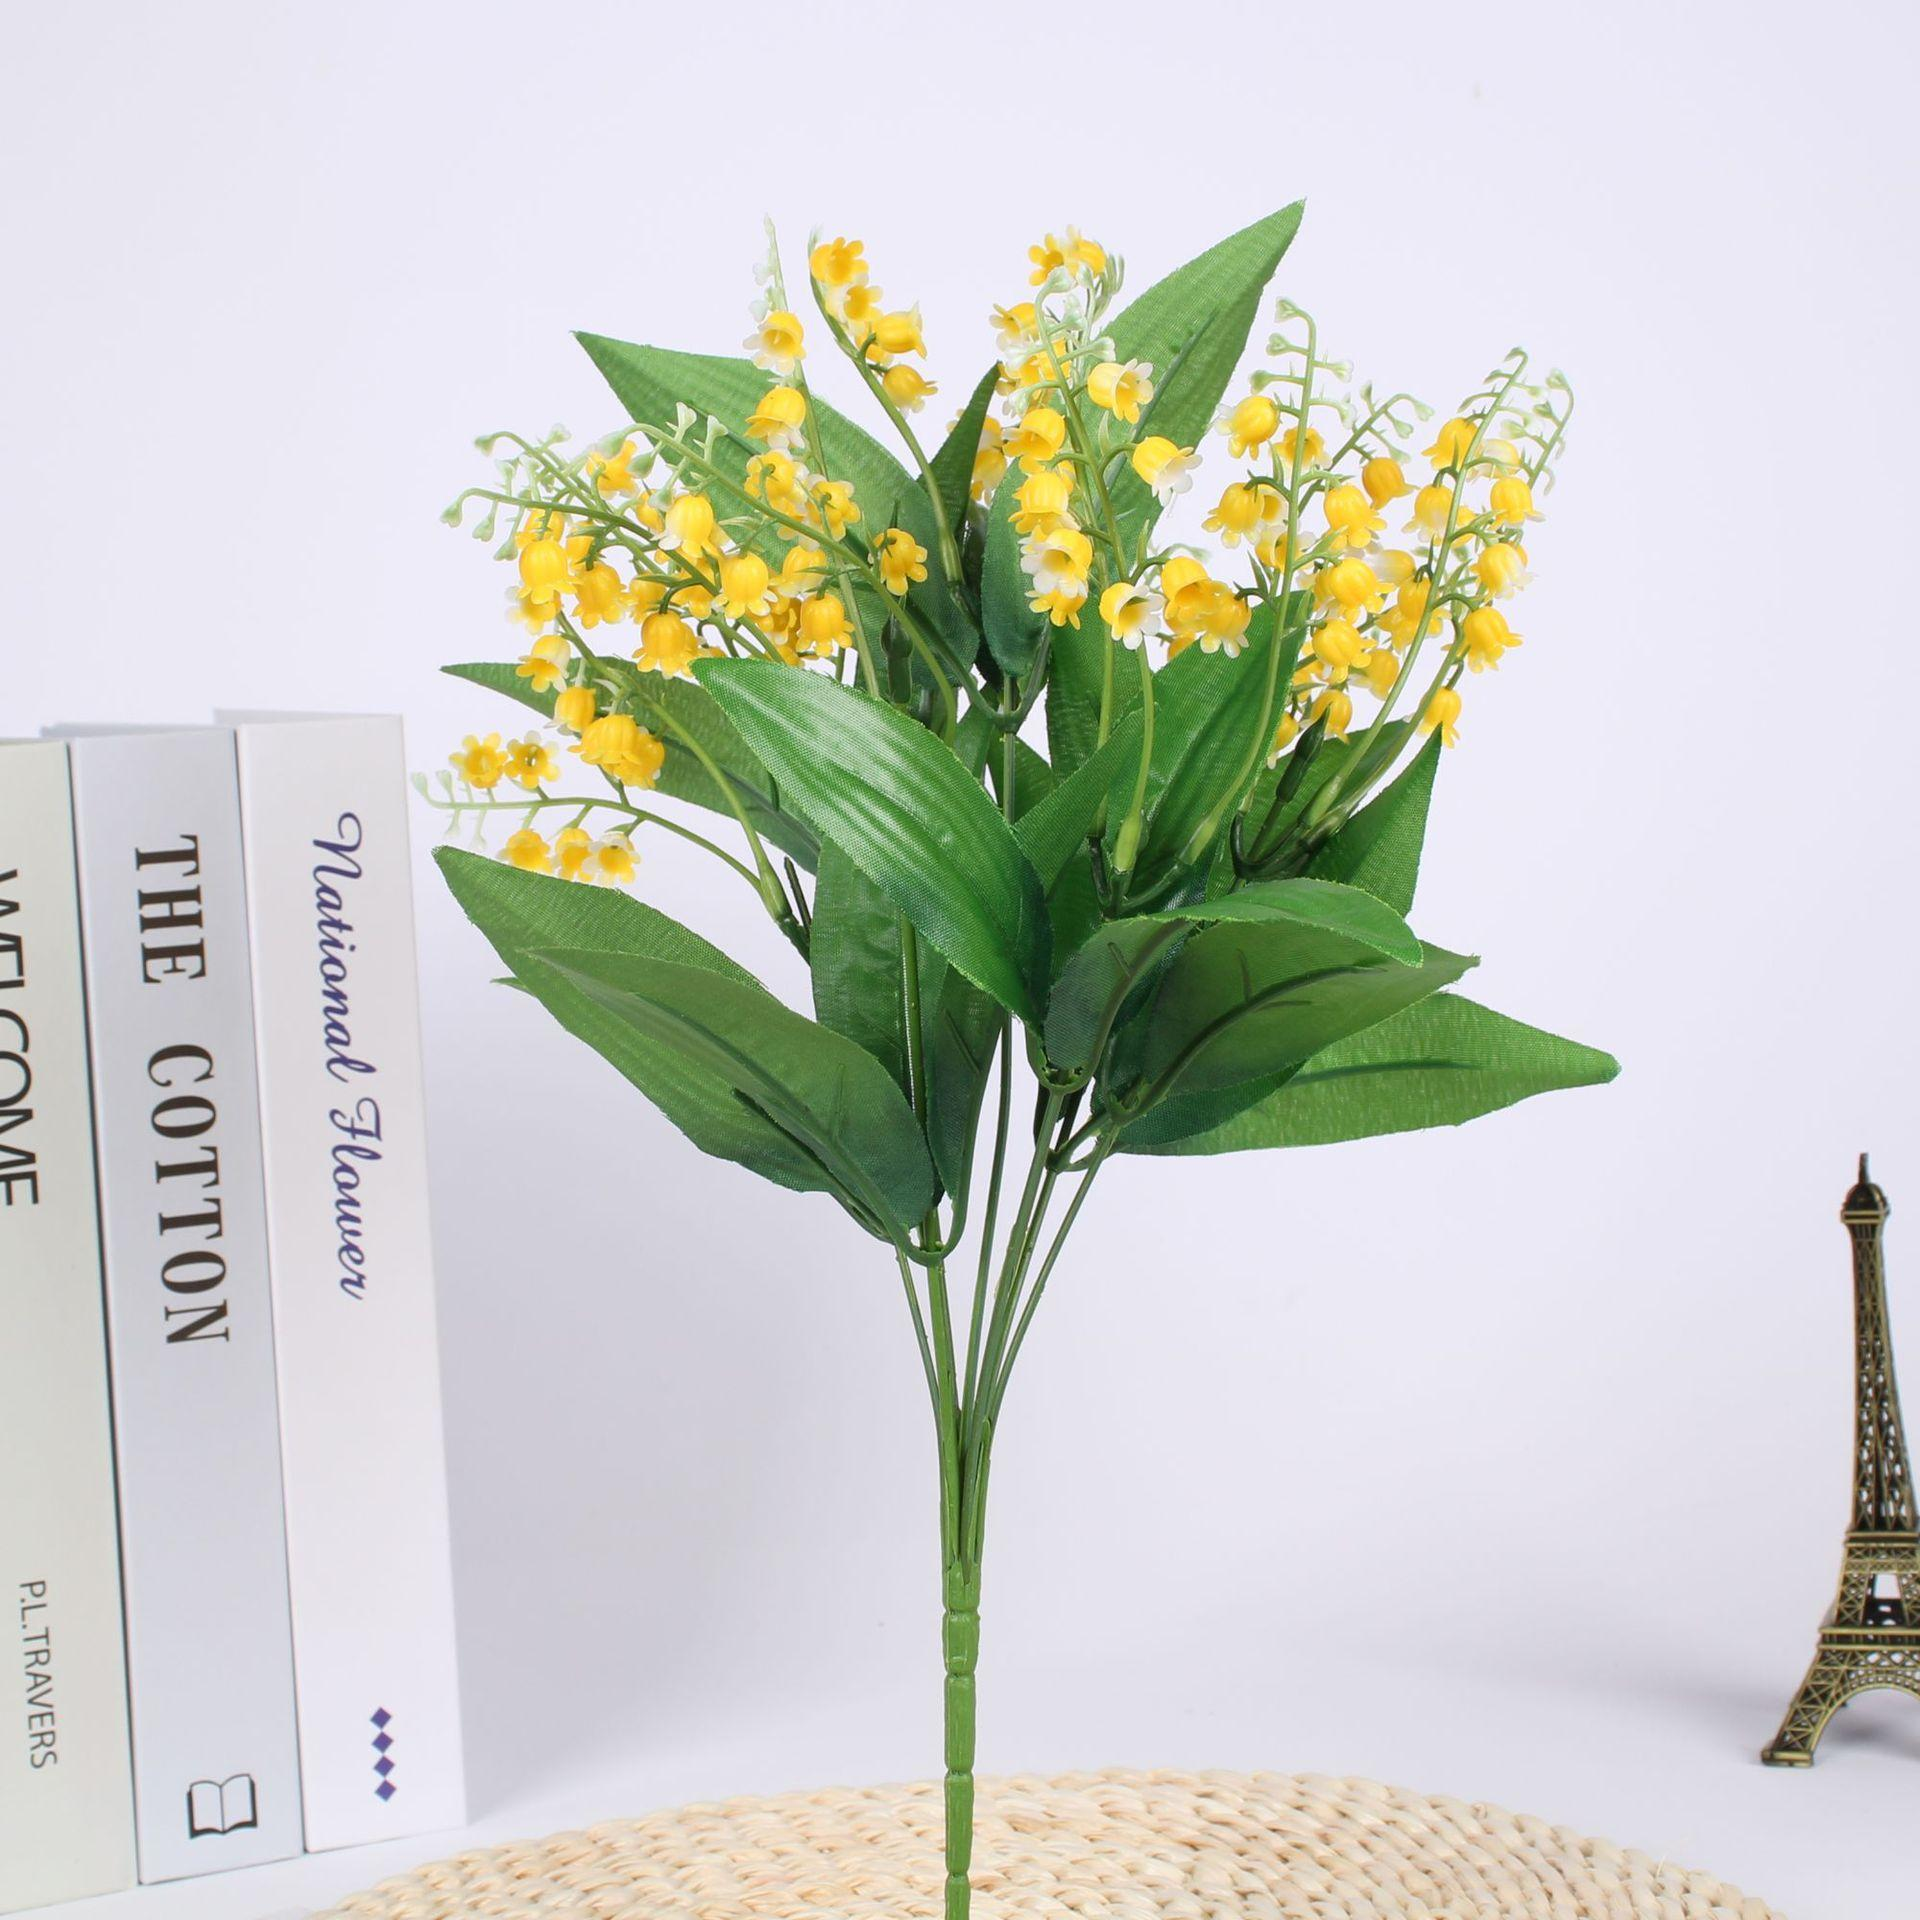 Plastic lily of the valley artificial flowers fake wedding decoration bride holding photography props 7 fork bells campanula flower table pendulum